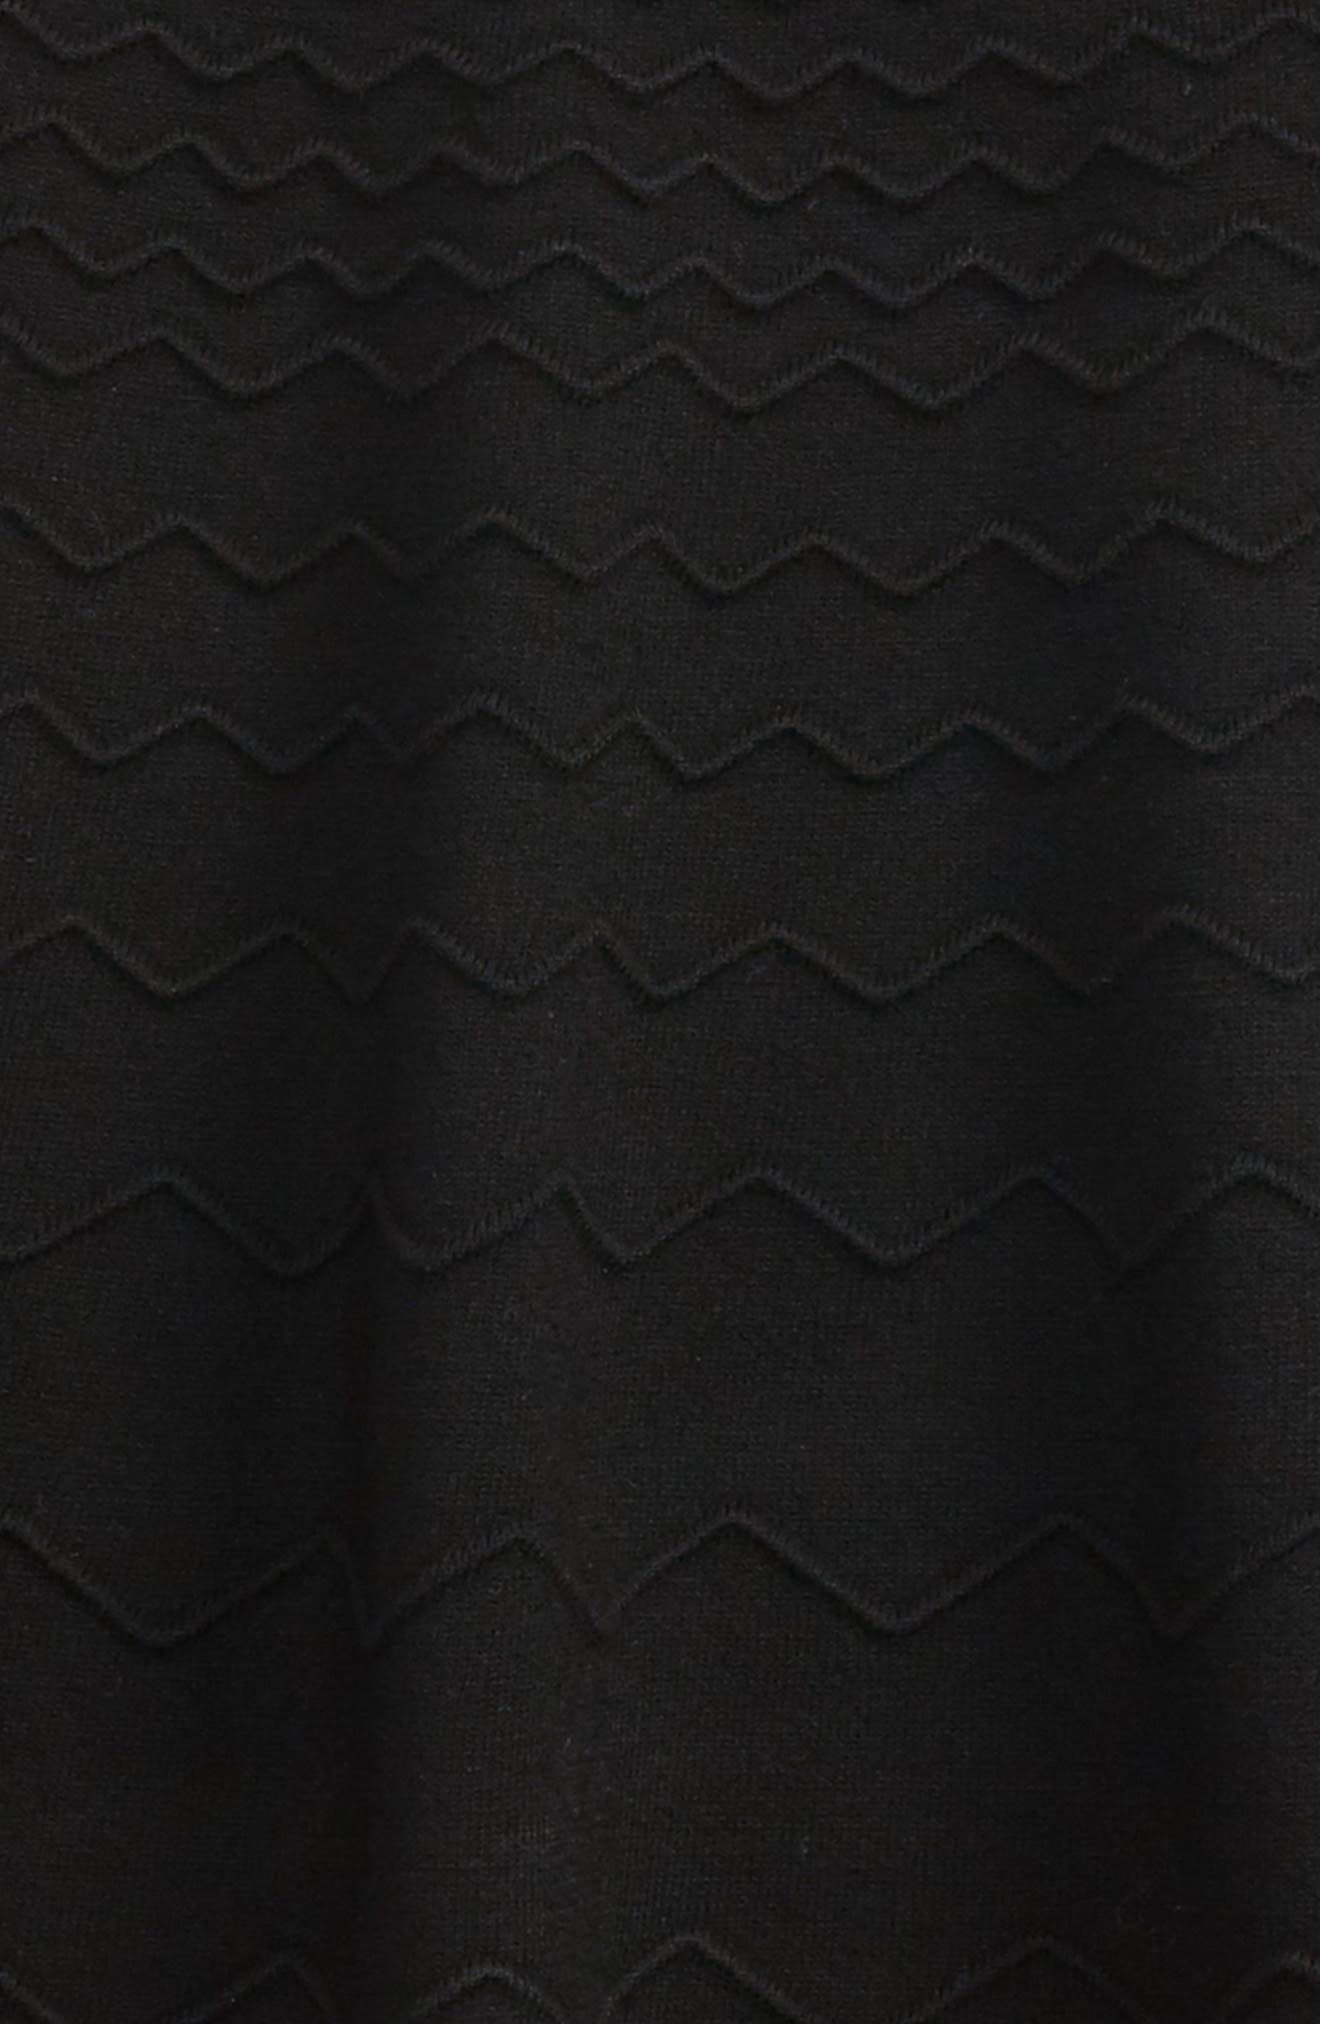 Chevron Skirt,                             Alternate thumbnail 2, color,                             001